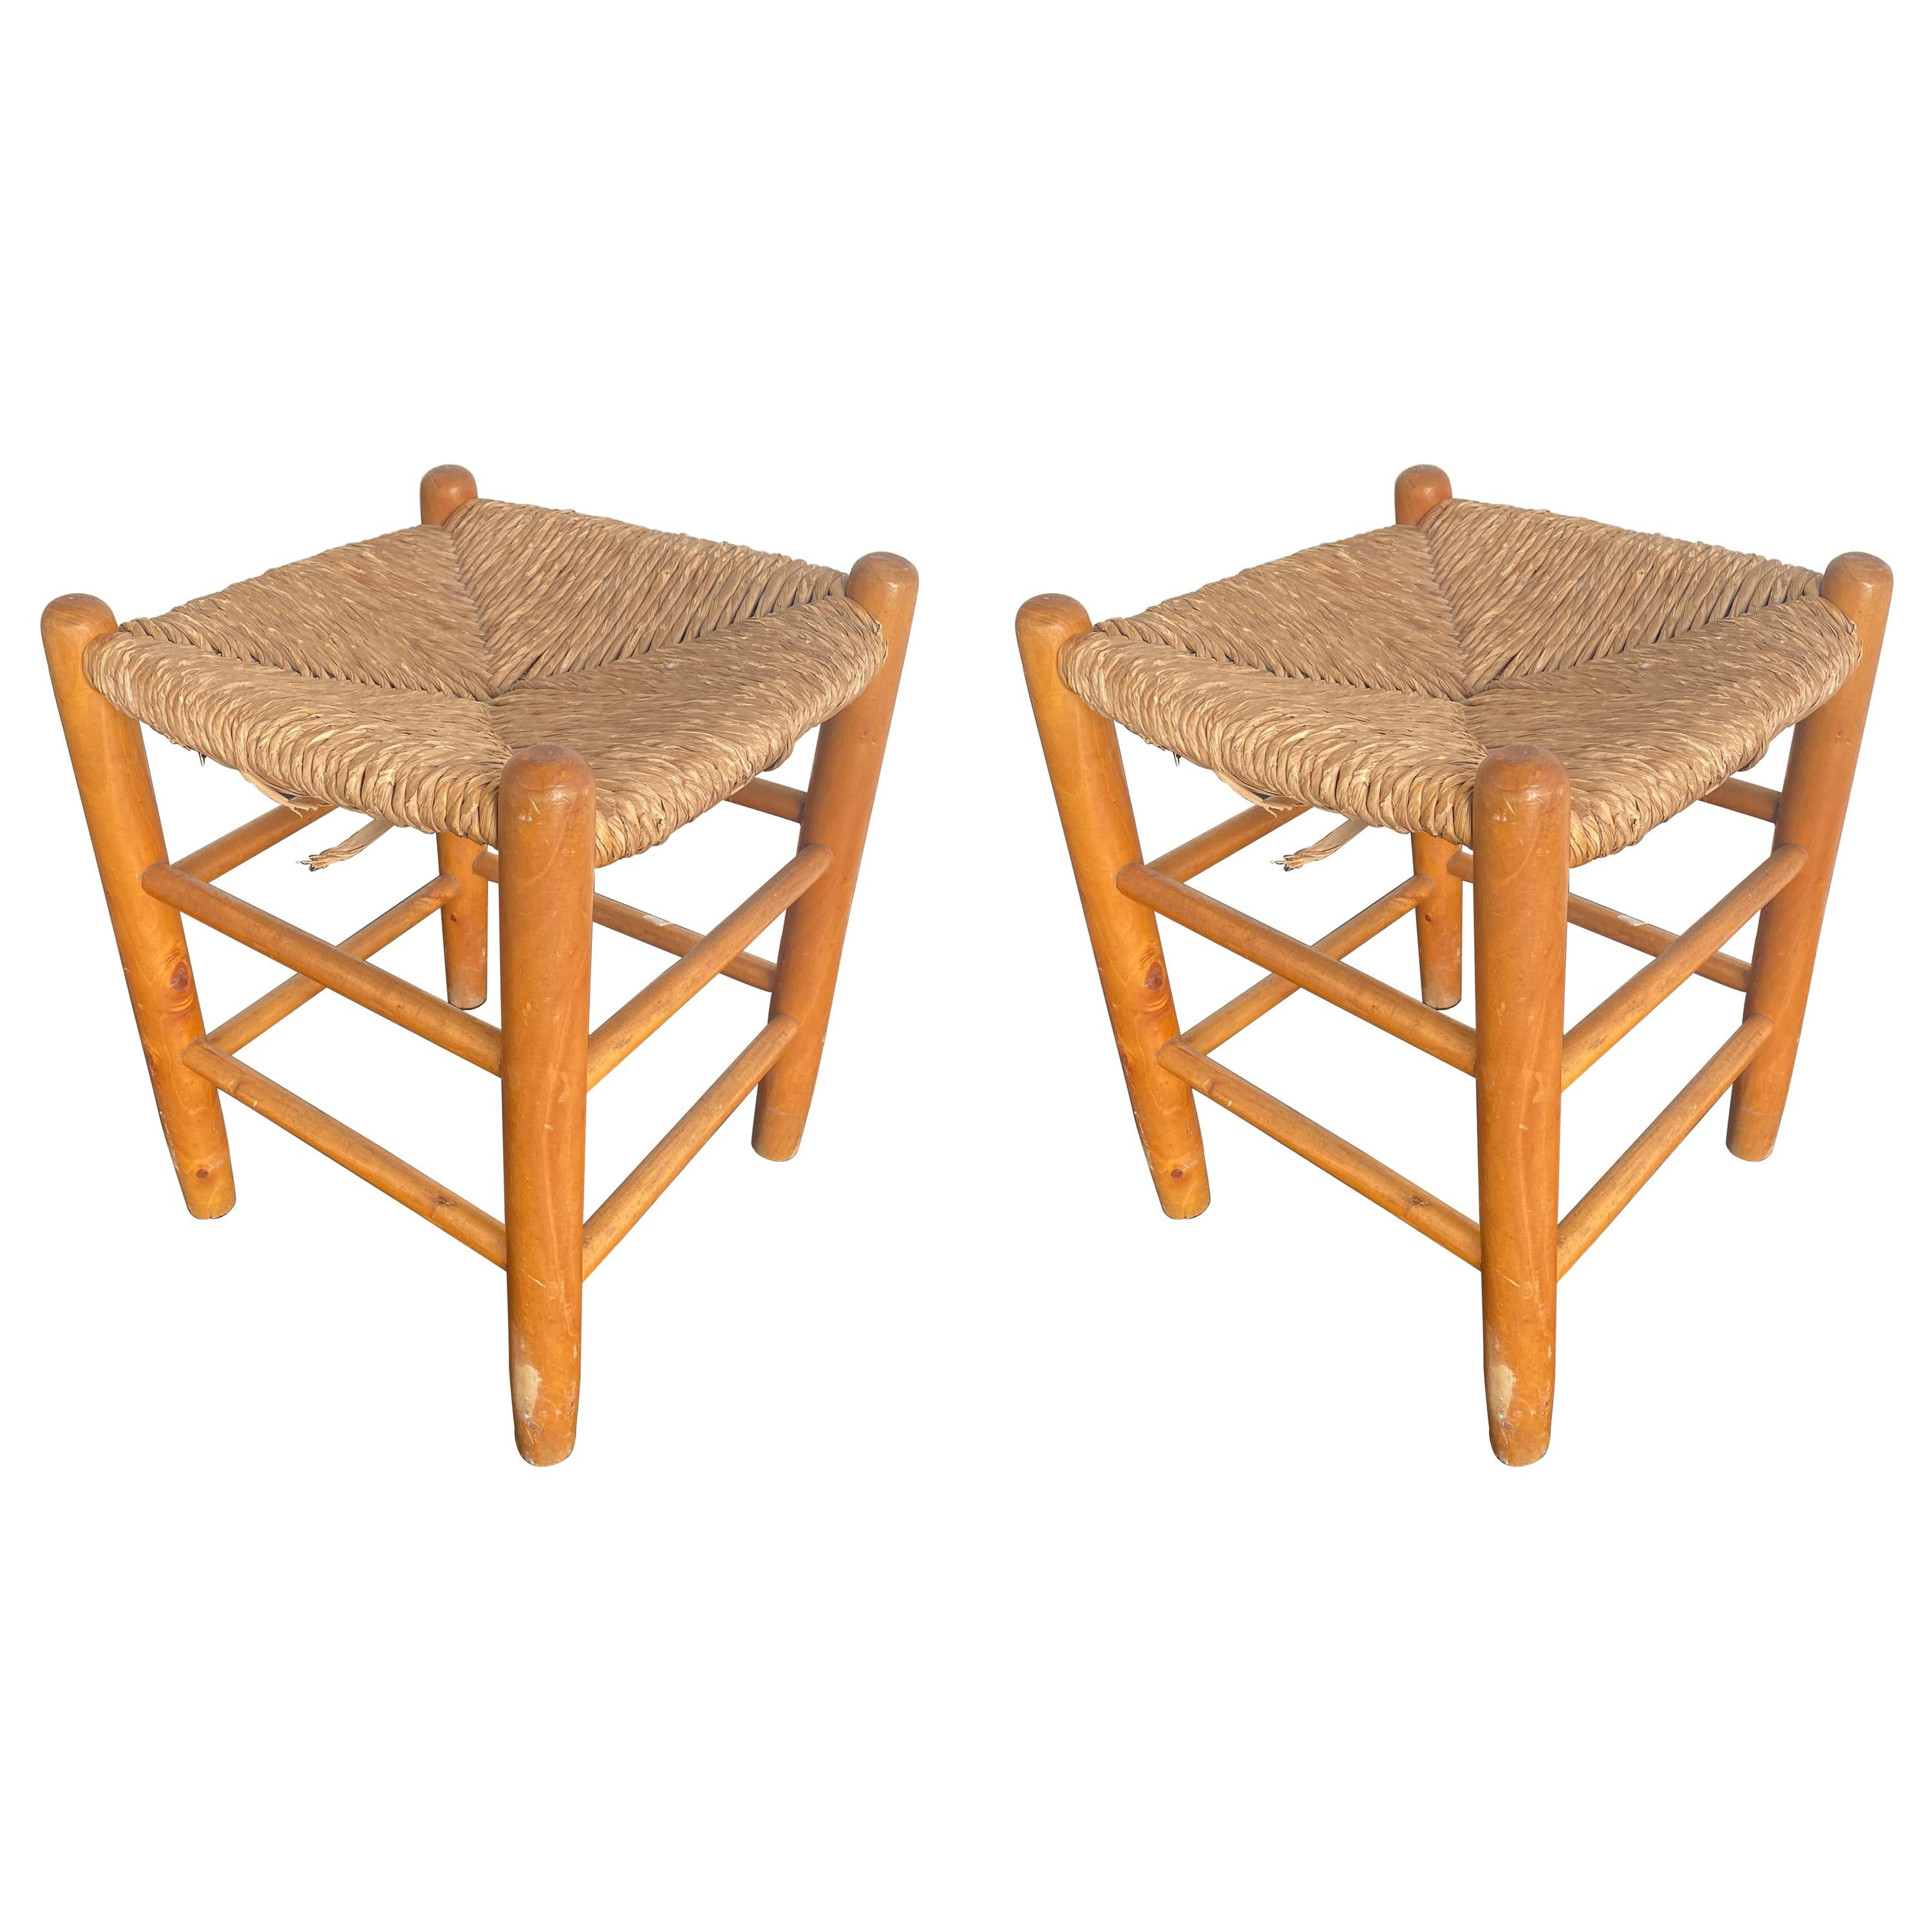 Pair of Wood and Straw Stools by Charlotte Perriand